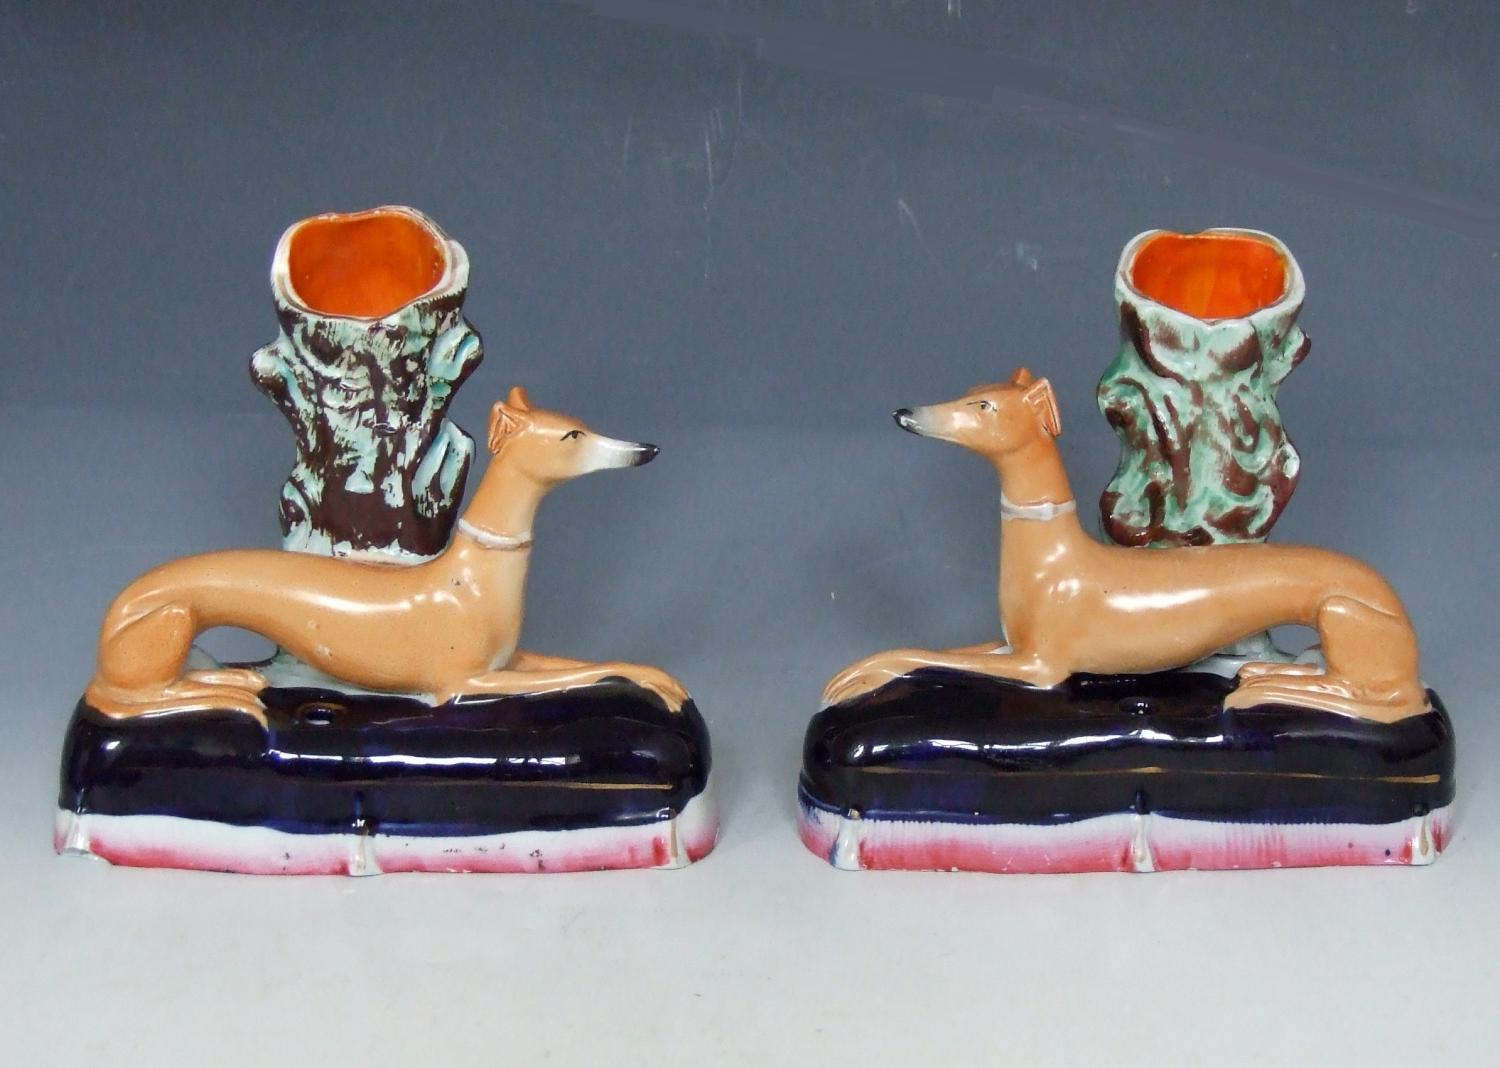 Pair of greyhounds on cobalt blue cushions